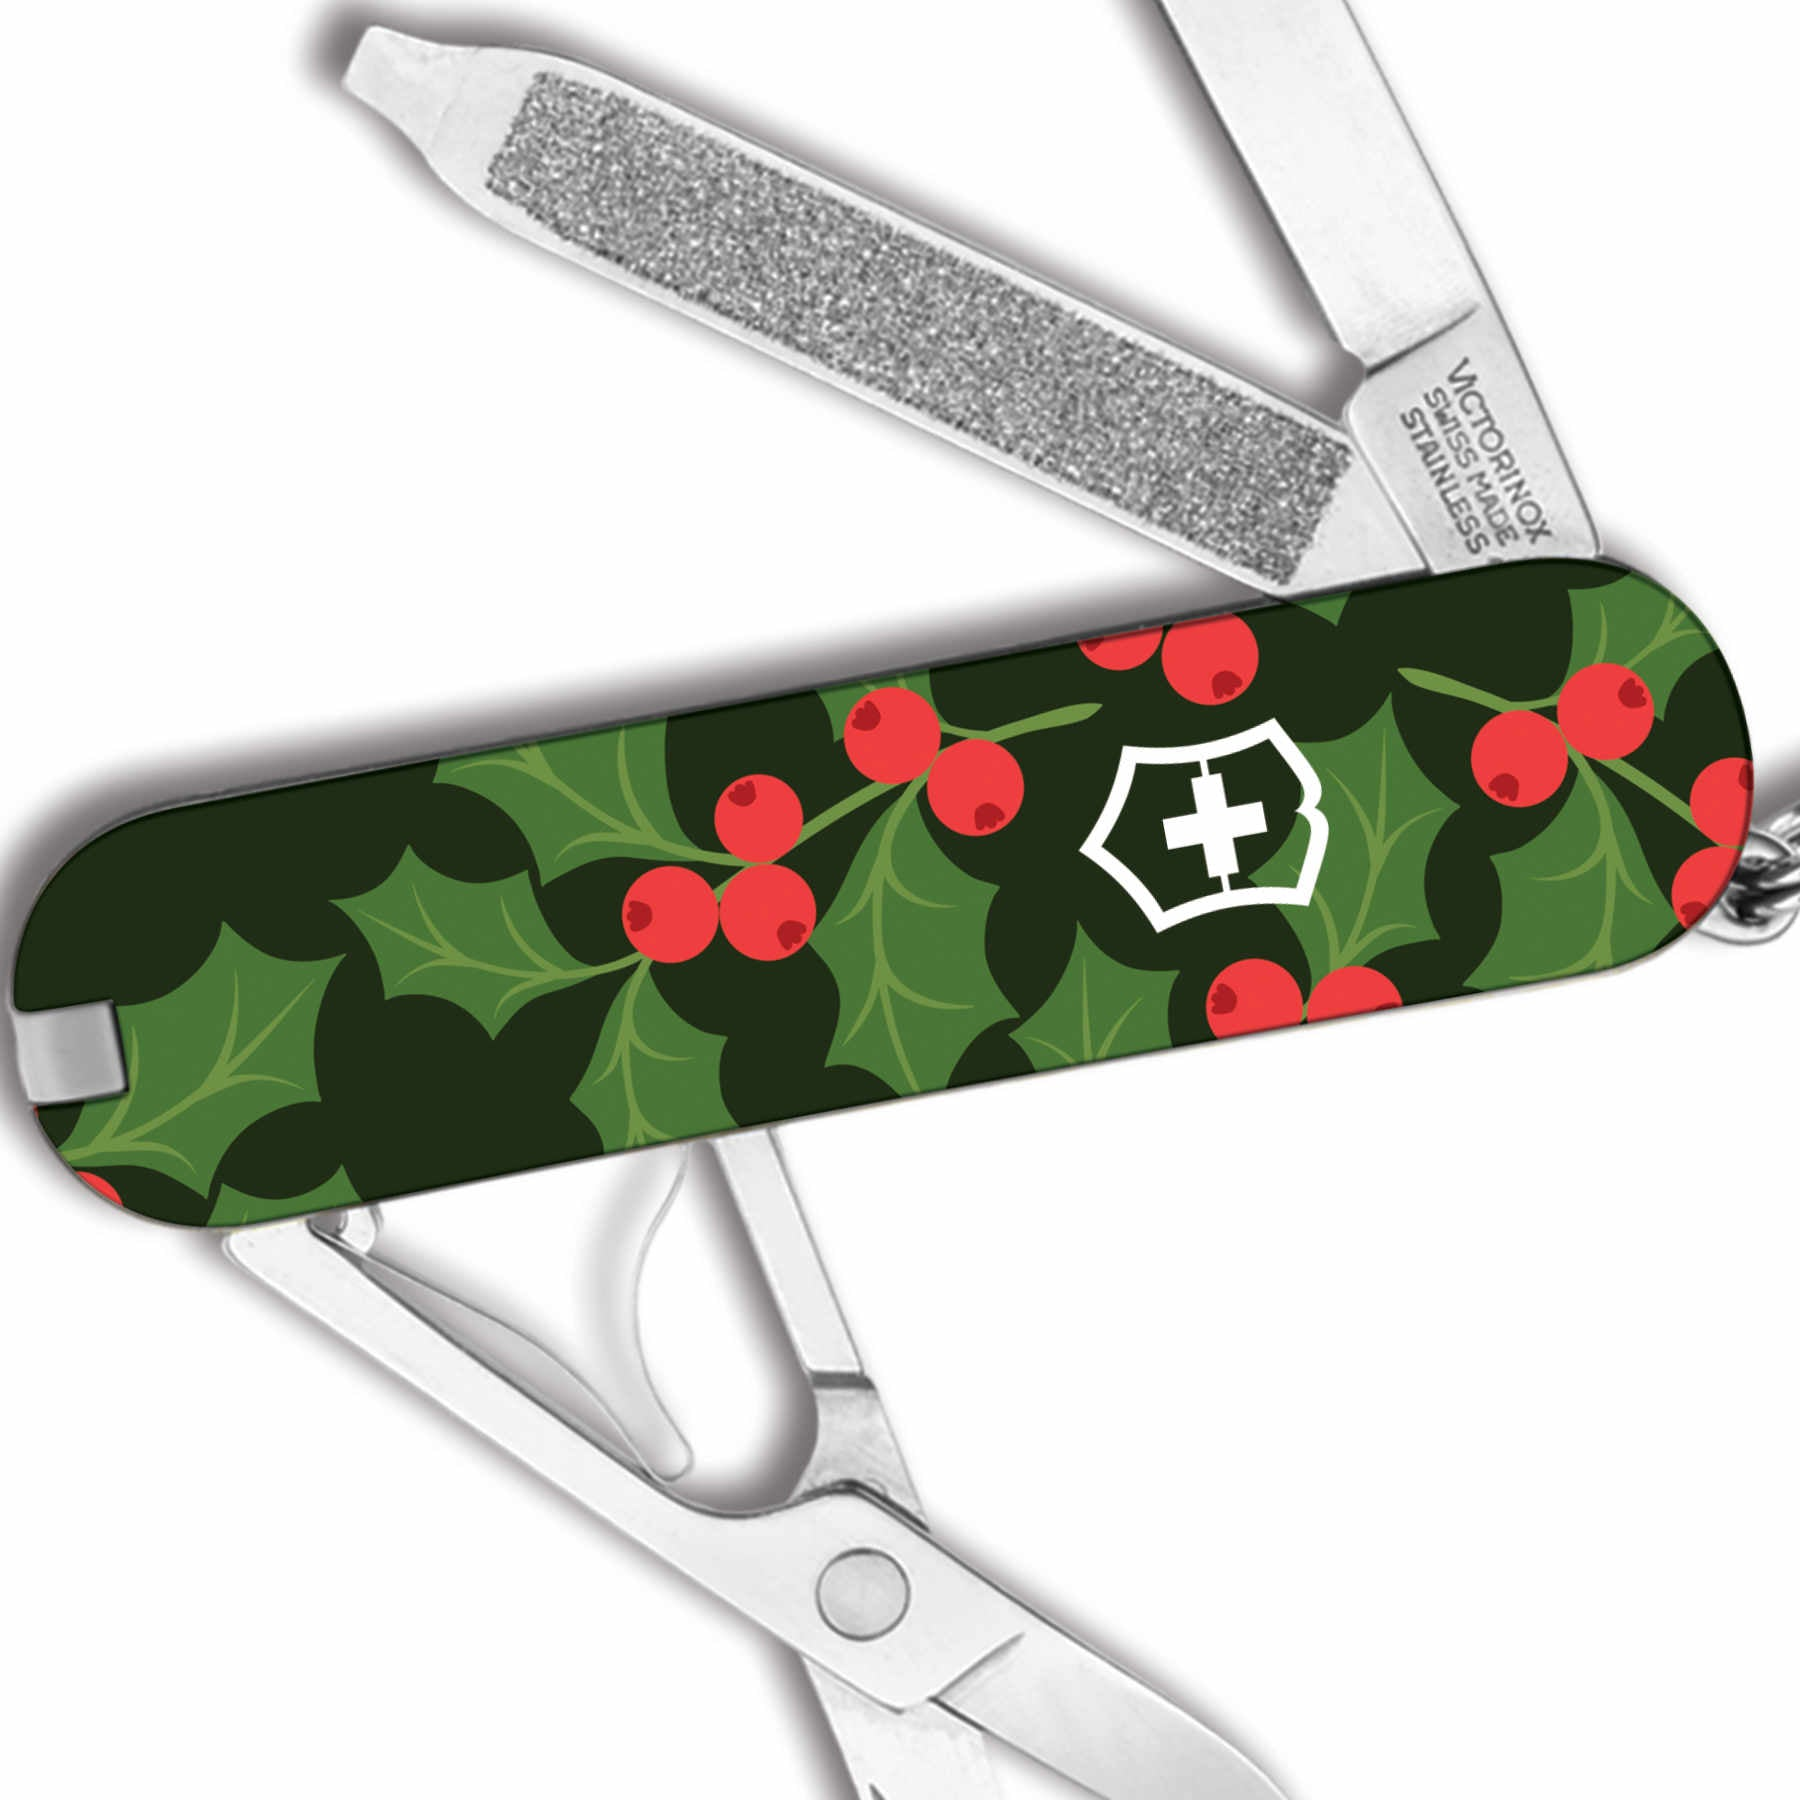 Holiday Swiss Army Knives at Swiss Knife Shop